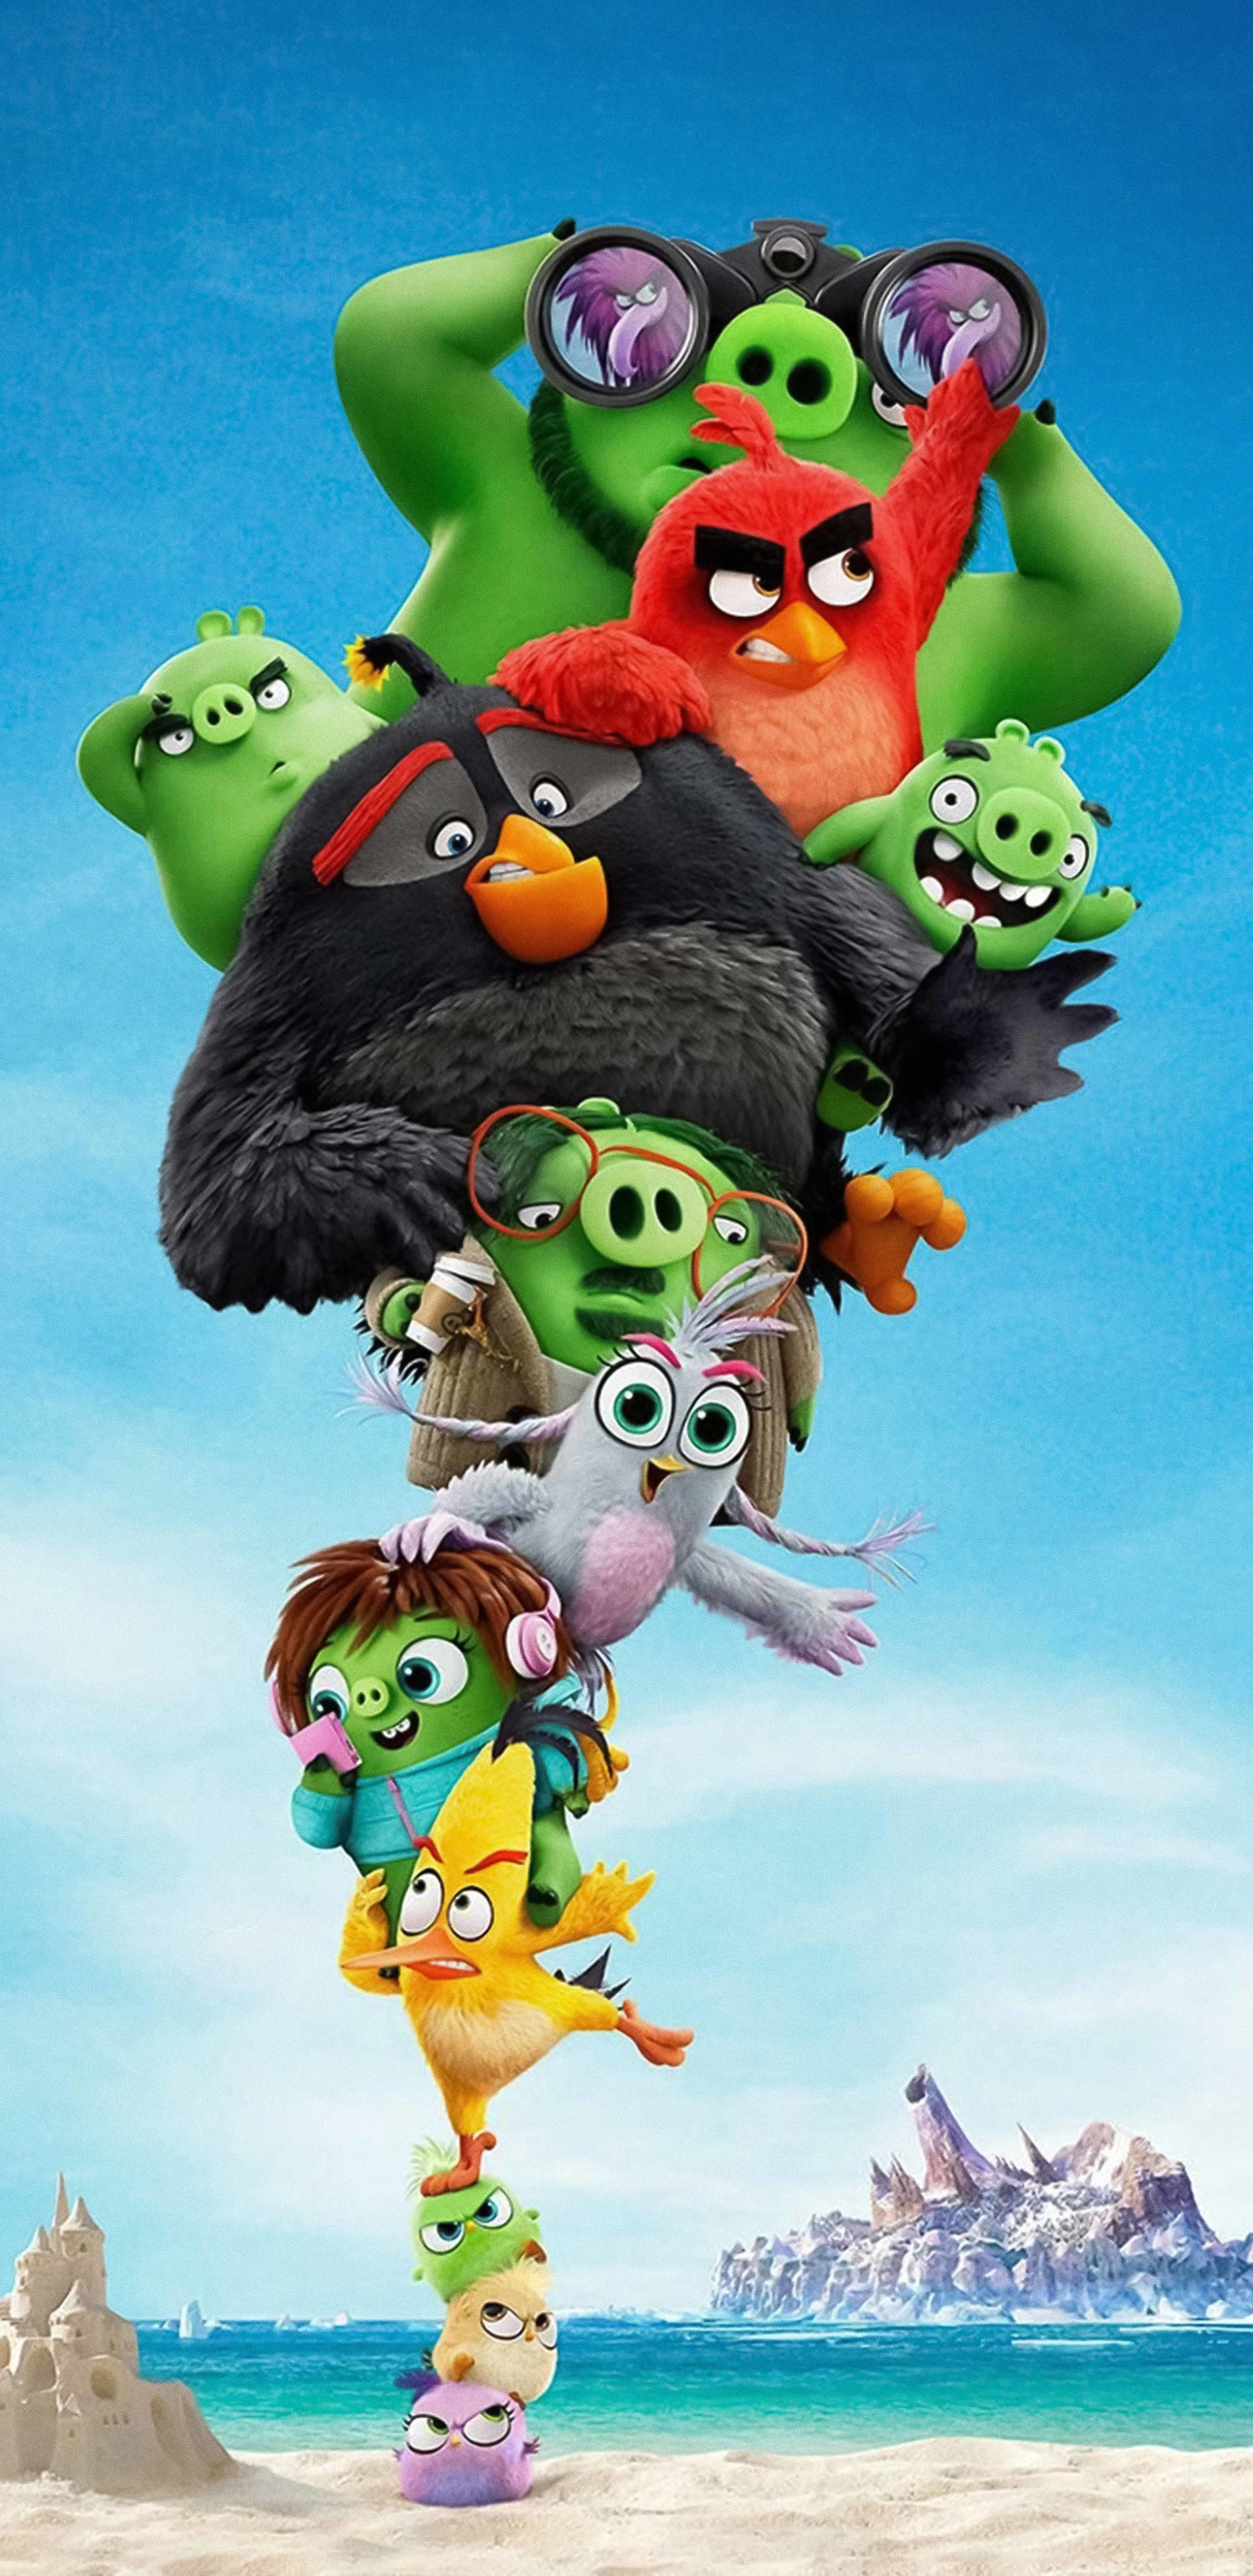 1440x2960 The Angry Birds 2 Samsung Galaxy Note 9 8 S9 S8 S8 Qhd Wallpaper Hd Movies 4k Wallpapers Images Photos And Background